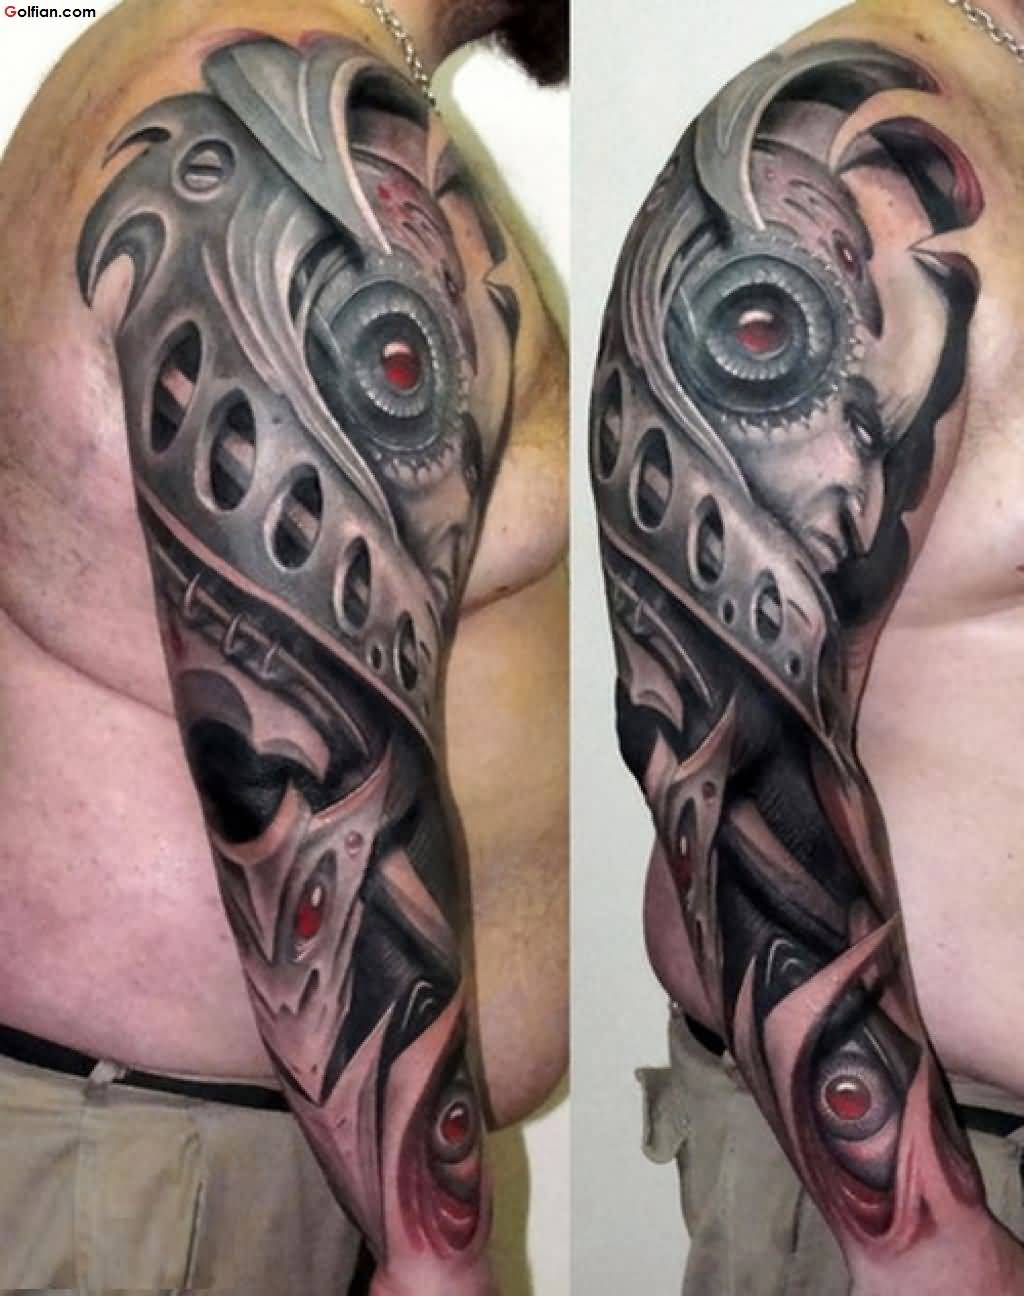 60 mind boggling 3d arm tattoos designs and ideas for Tattoo ideas arm